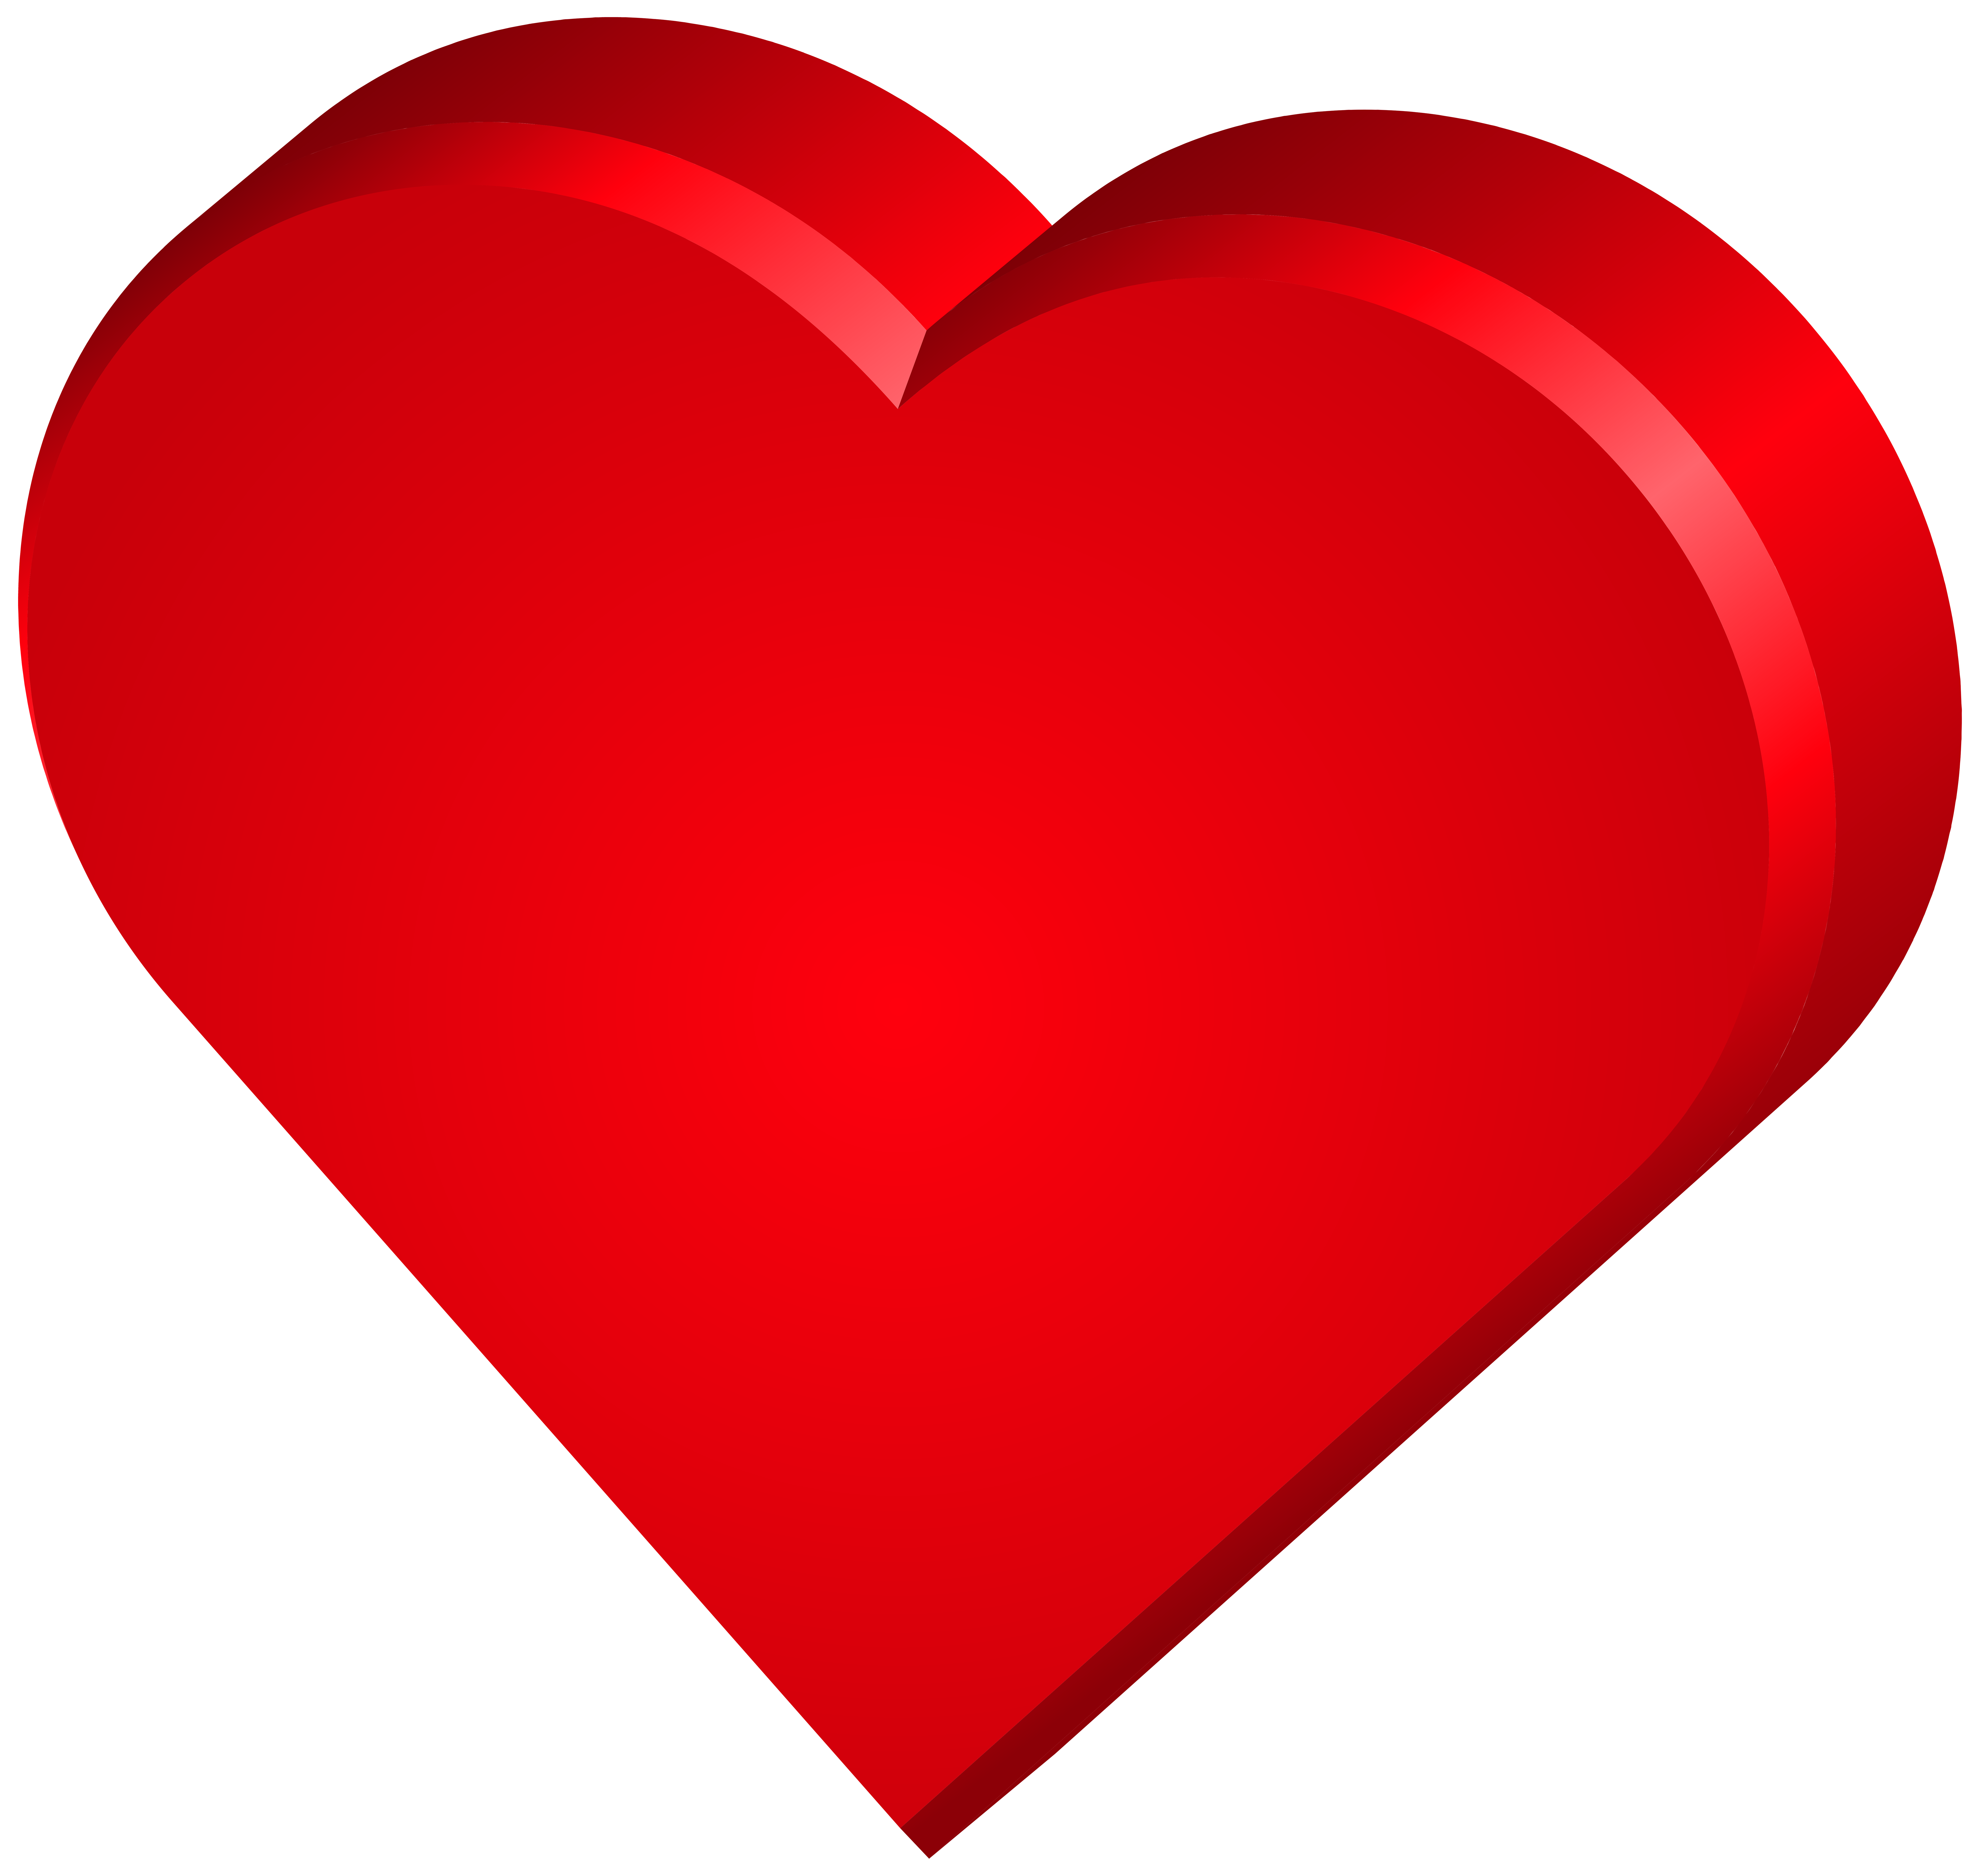 Clipart heart wine. Png clip art image